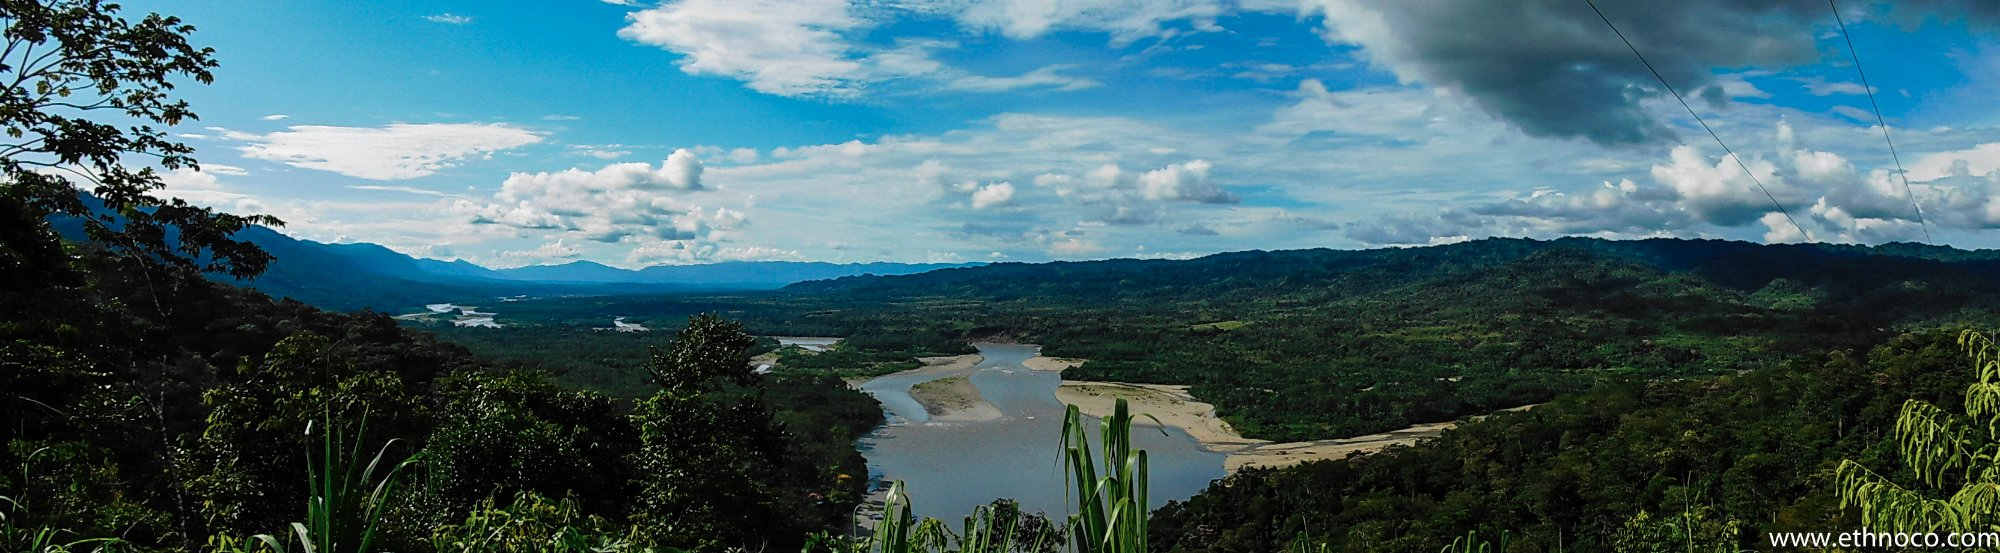 The Amazon Rainforest region North of Cusco is a biological wonder and profound enigma.